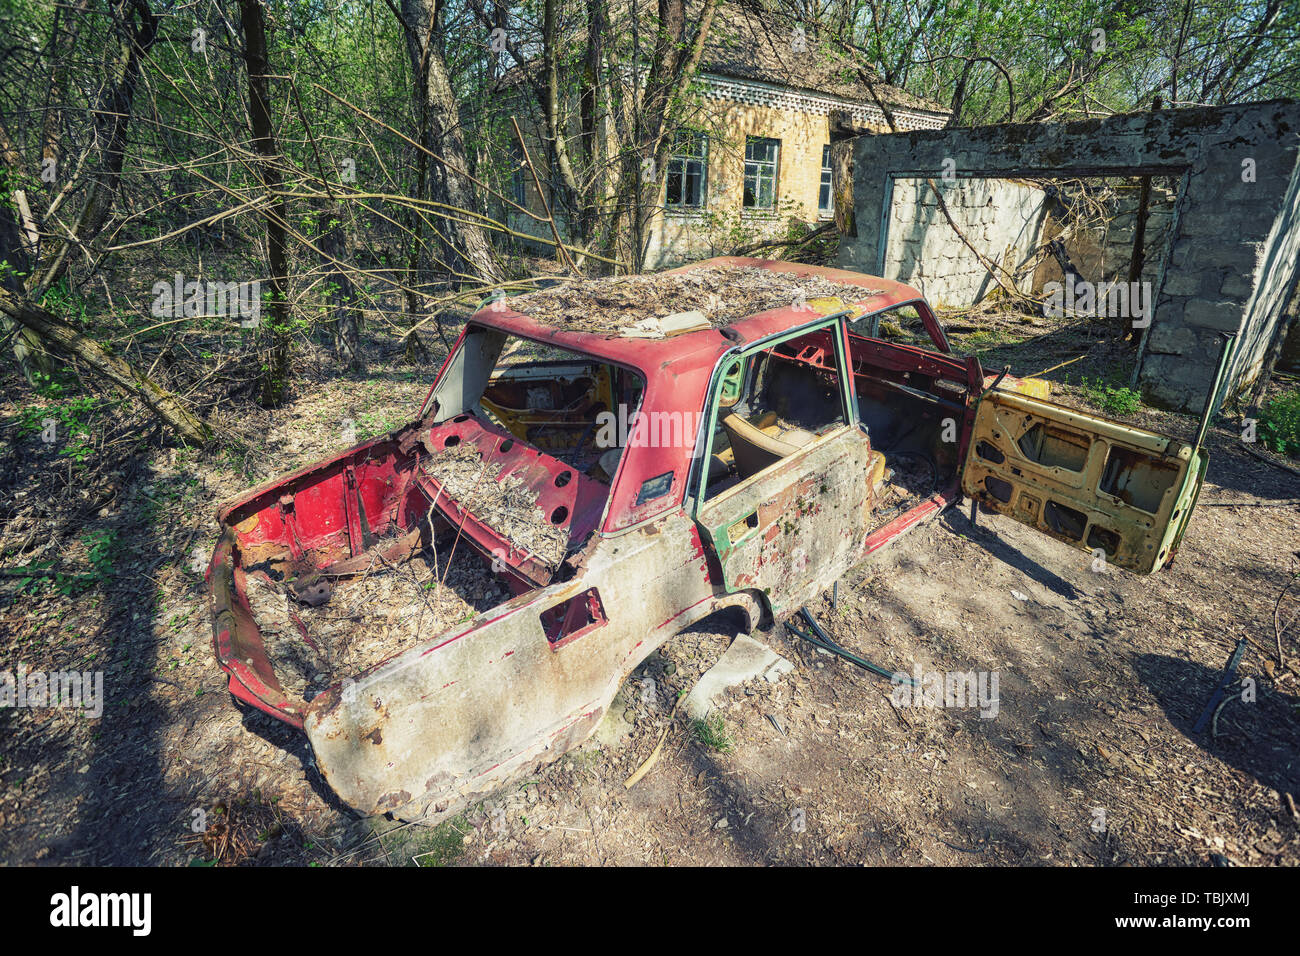 Radioactive dead zone of Chernobyl. Abandoned looted appliances, cars, electronics in Chernobyl accident. Consequences of evacuation, looting and vand - Stock Image